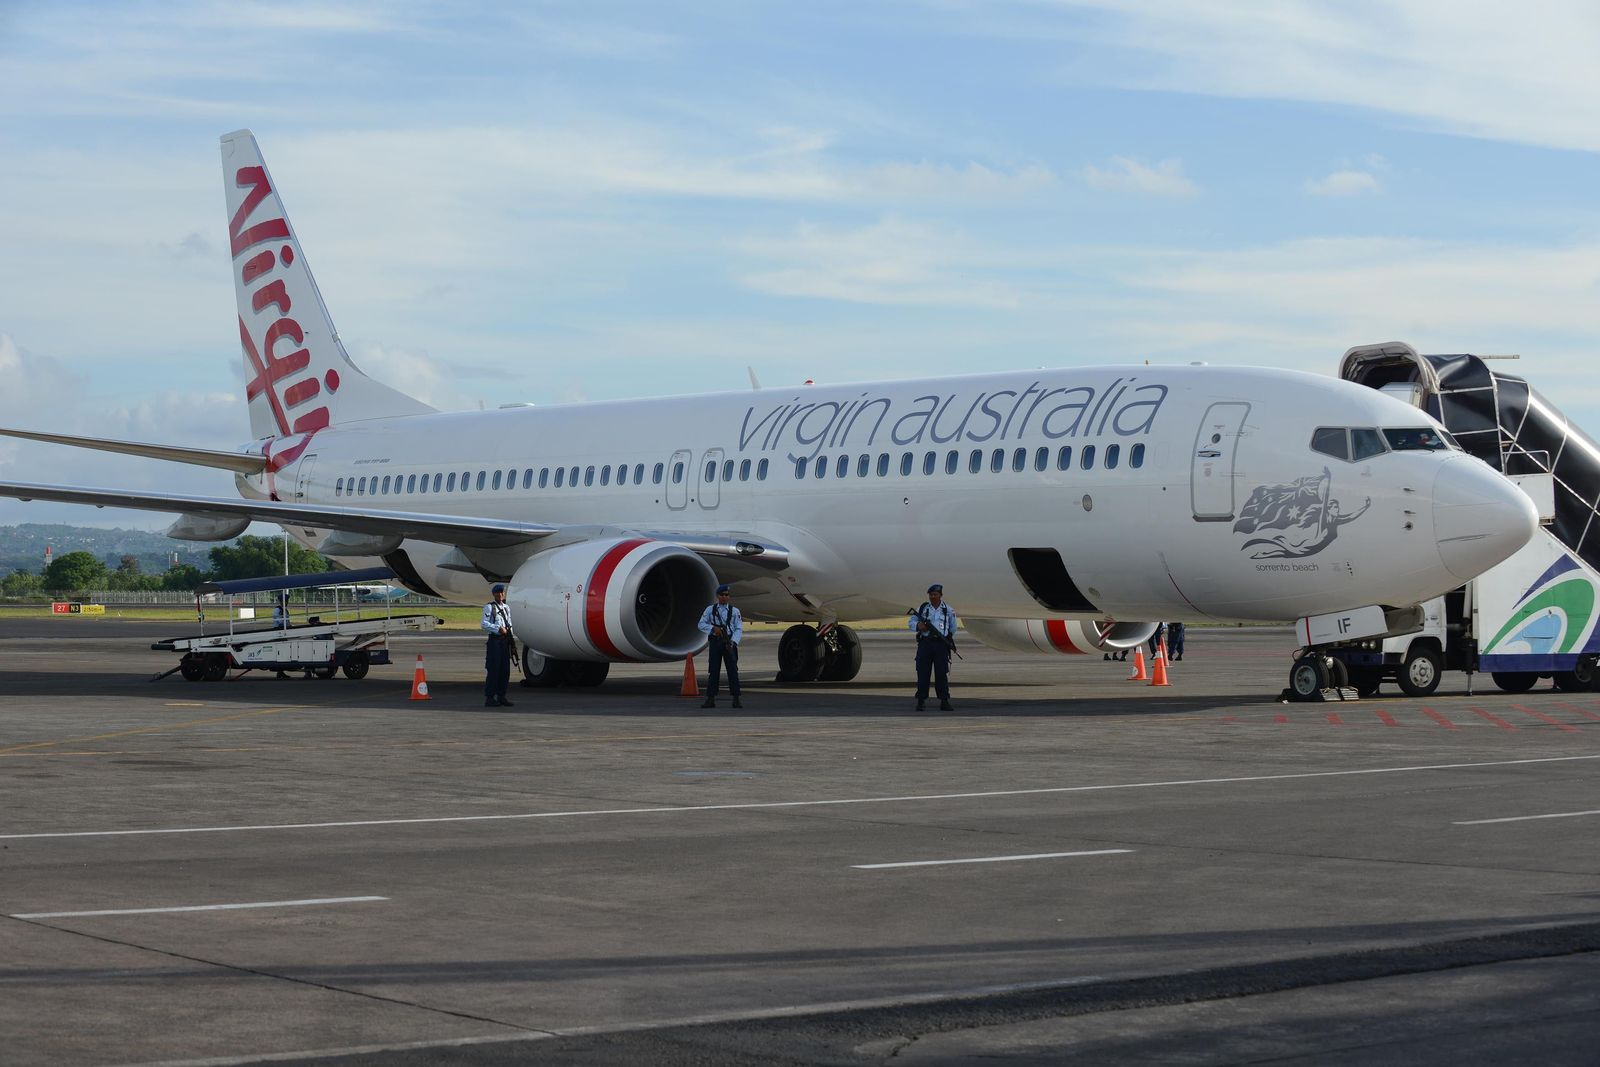 Virgin Australia/ hijacking